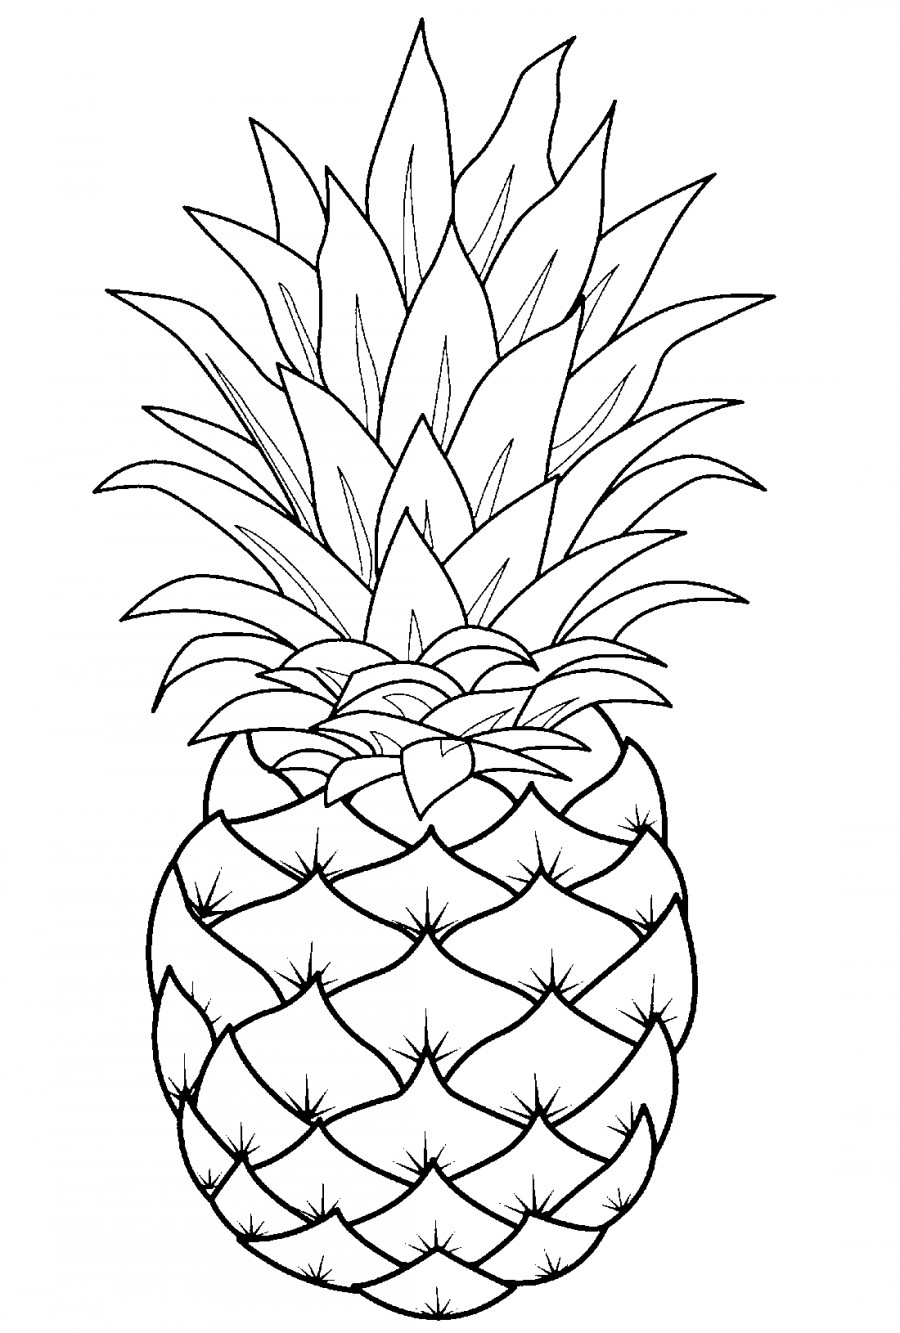 pineapple line drawing pineapple template with images line art drawings pineapple drawing line